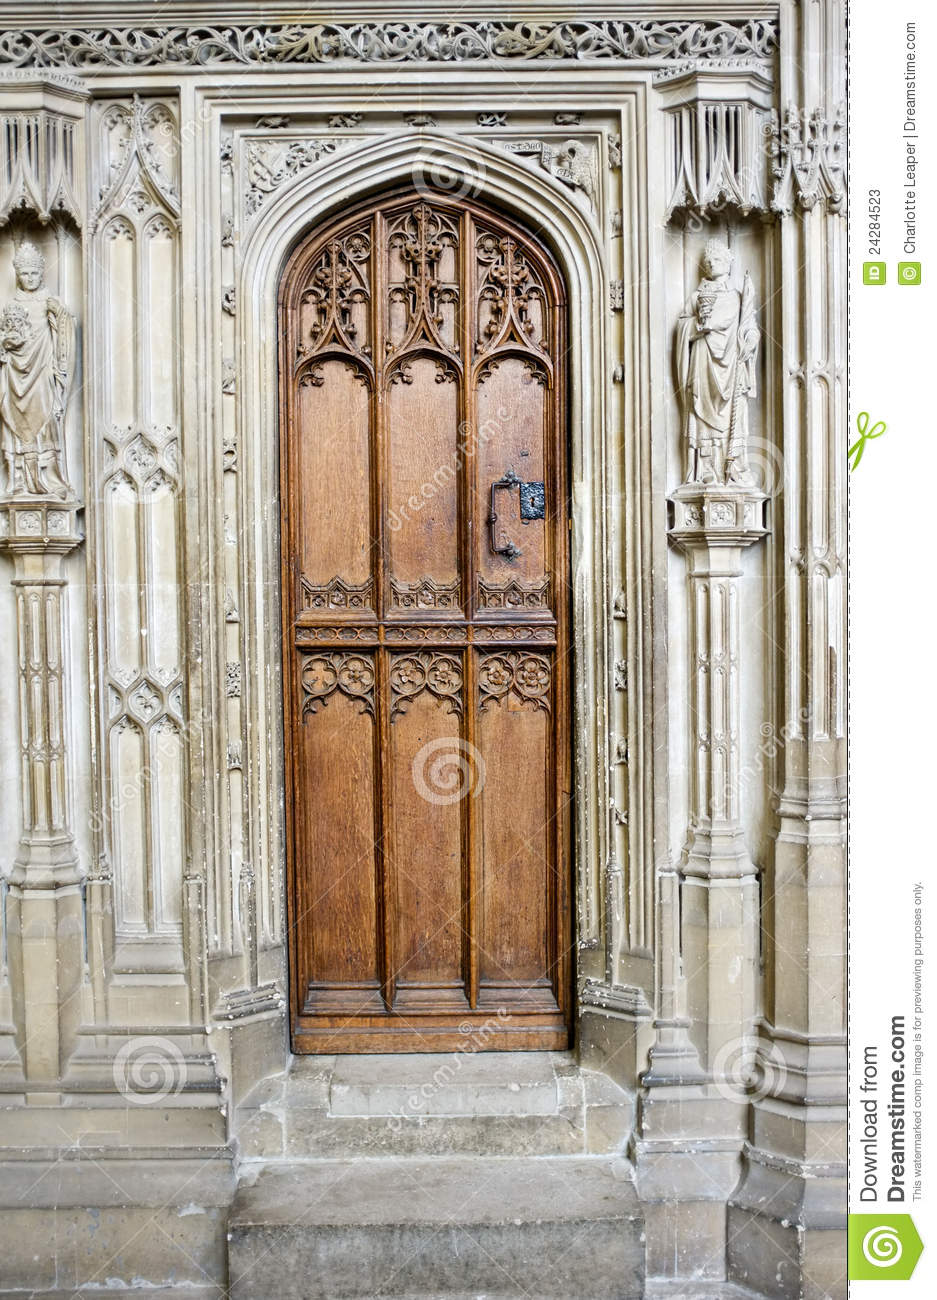 Image Result For Doorway Furniture